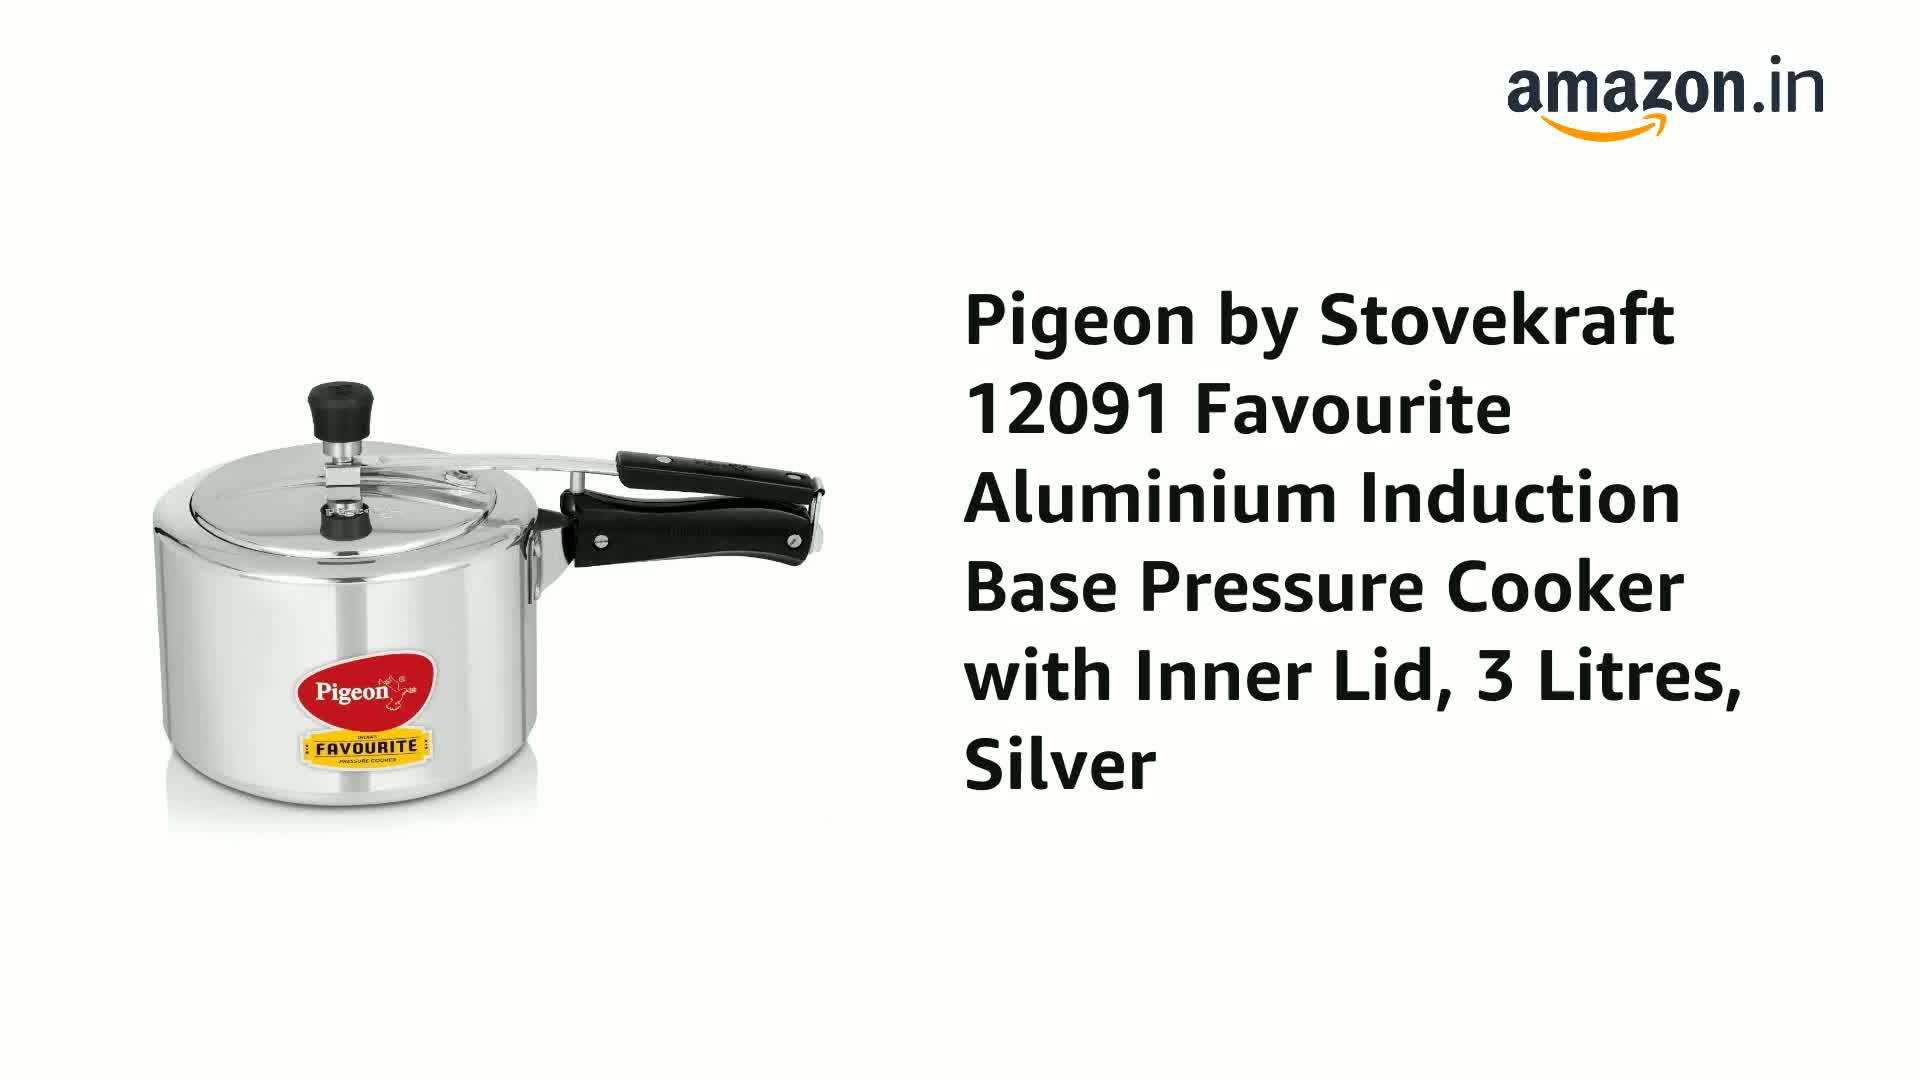 Pigeon-by-Stovekraft-12091-Favourite-Aluminium-Induction-Base-Pressure-Cooker-with-Inner-Lid-3-Litres-Silver